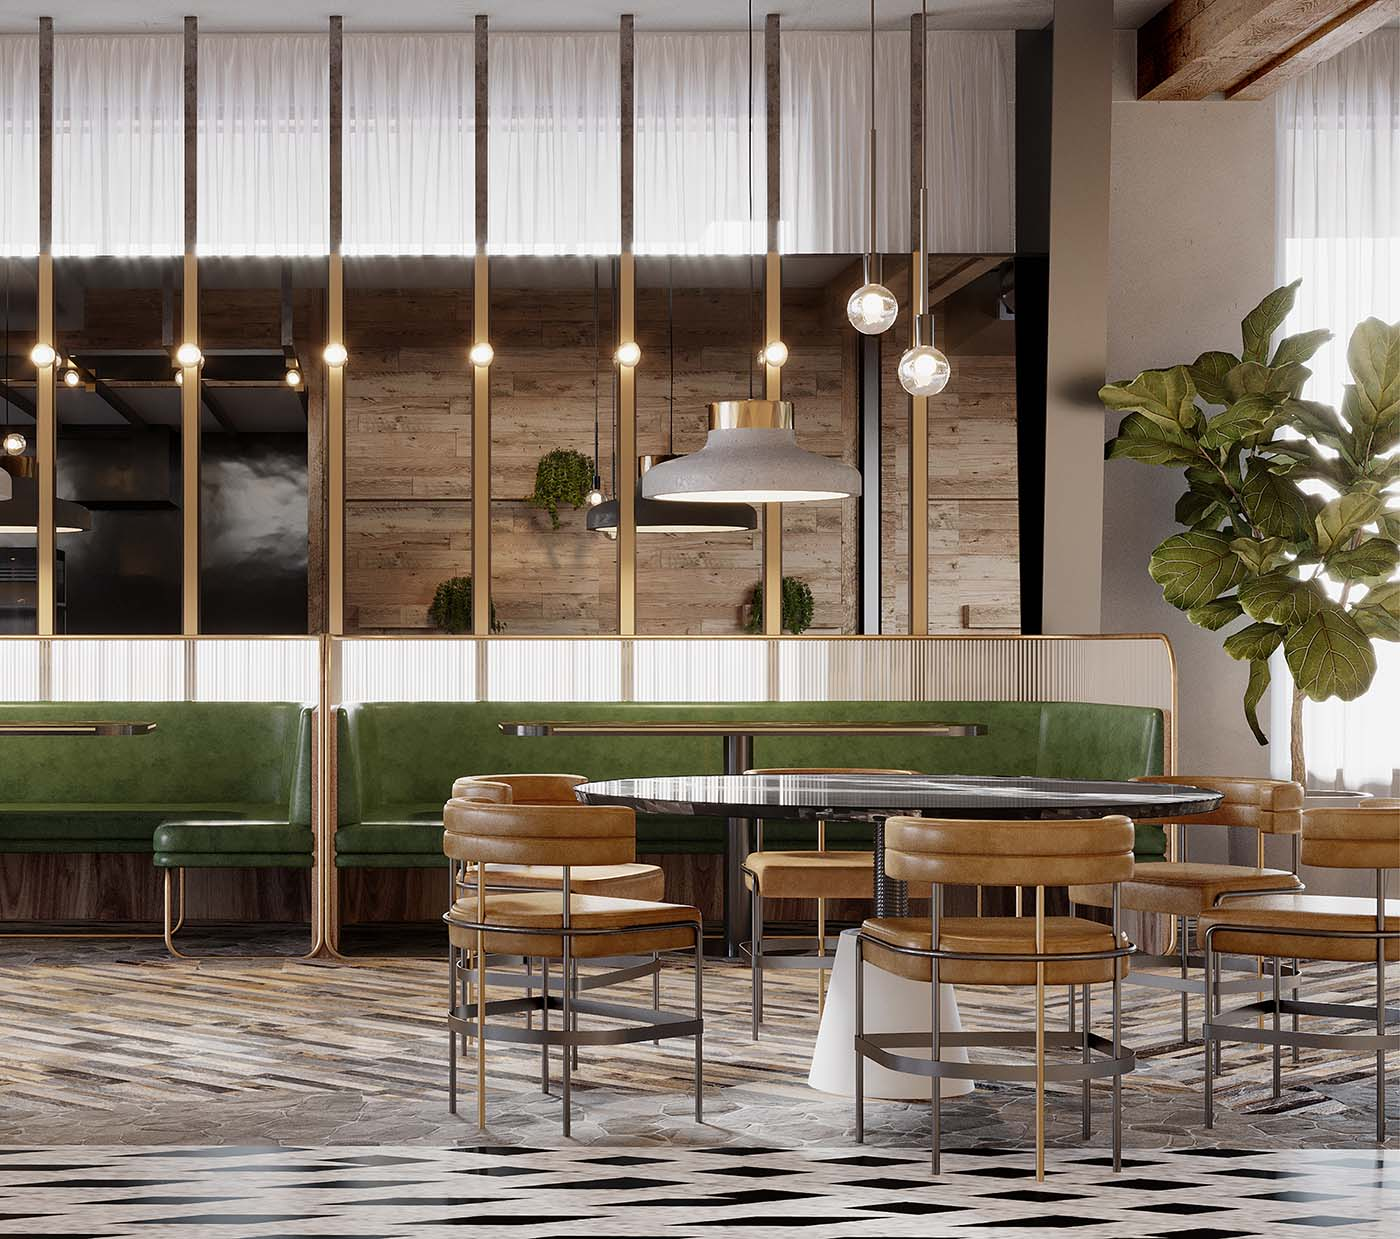 Biophilic cafe design in Sydney showing a close up of the dining area with plants and tables.